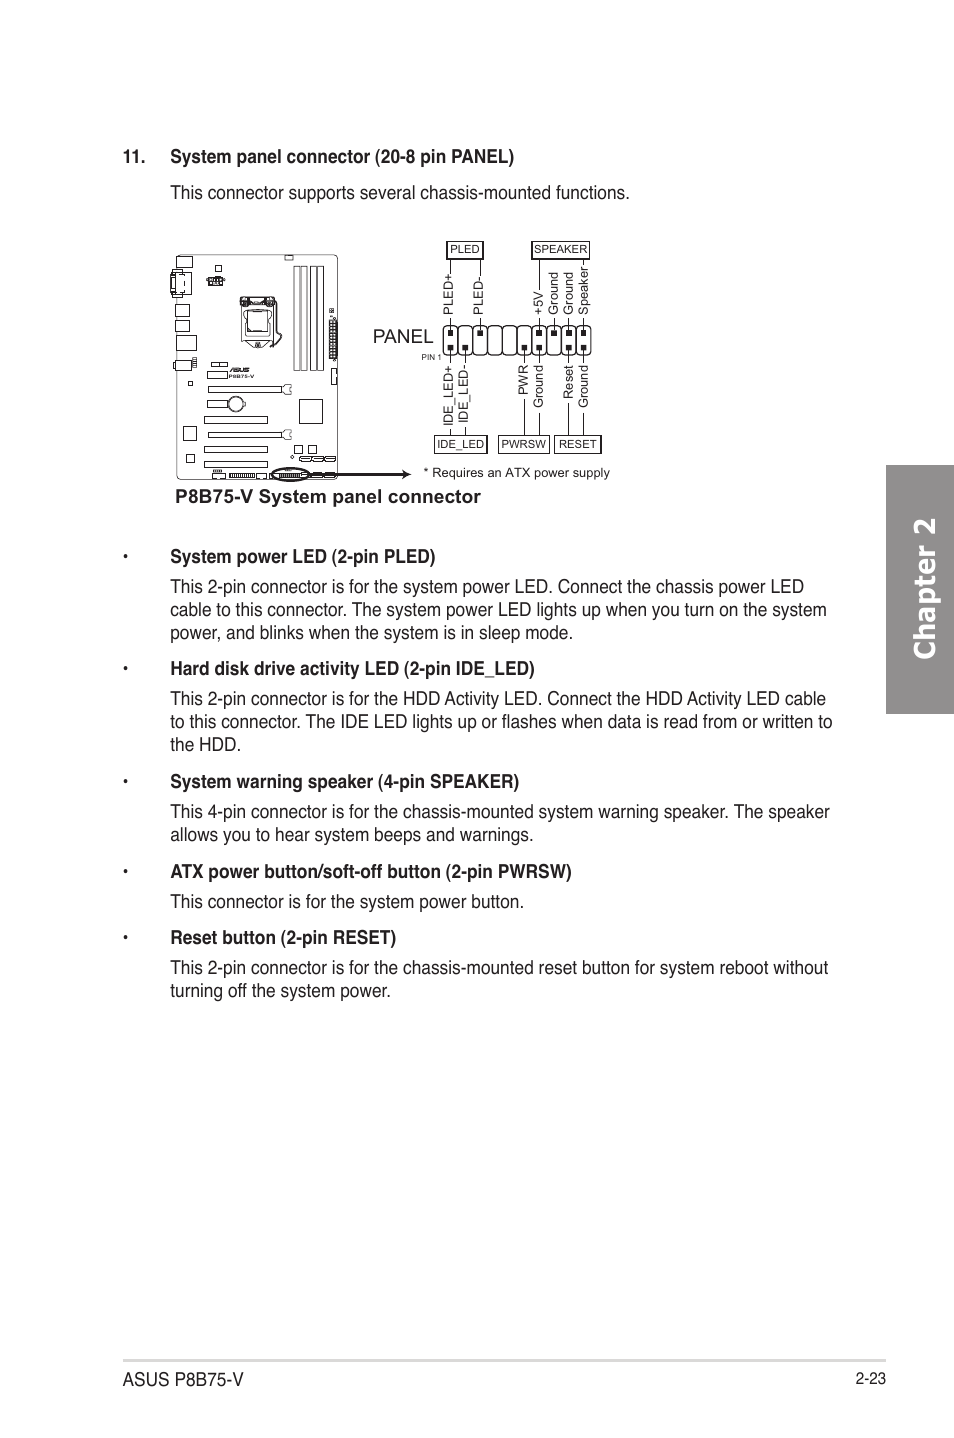 Chapter 2 Asus P8b75 V System Panel Connector Power Button Wiring Diagram User Manual Page 41 133